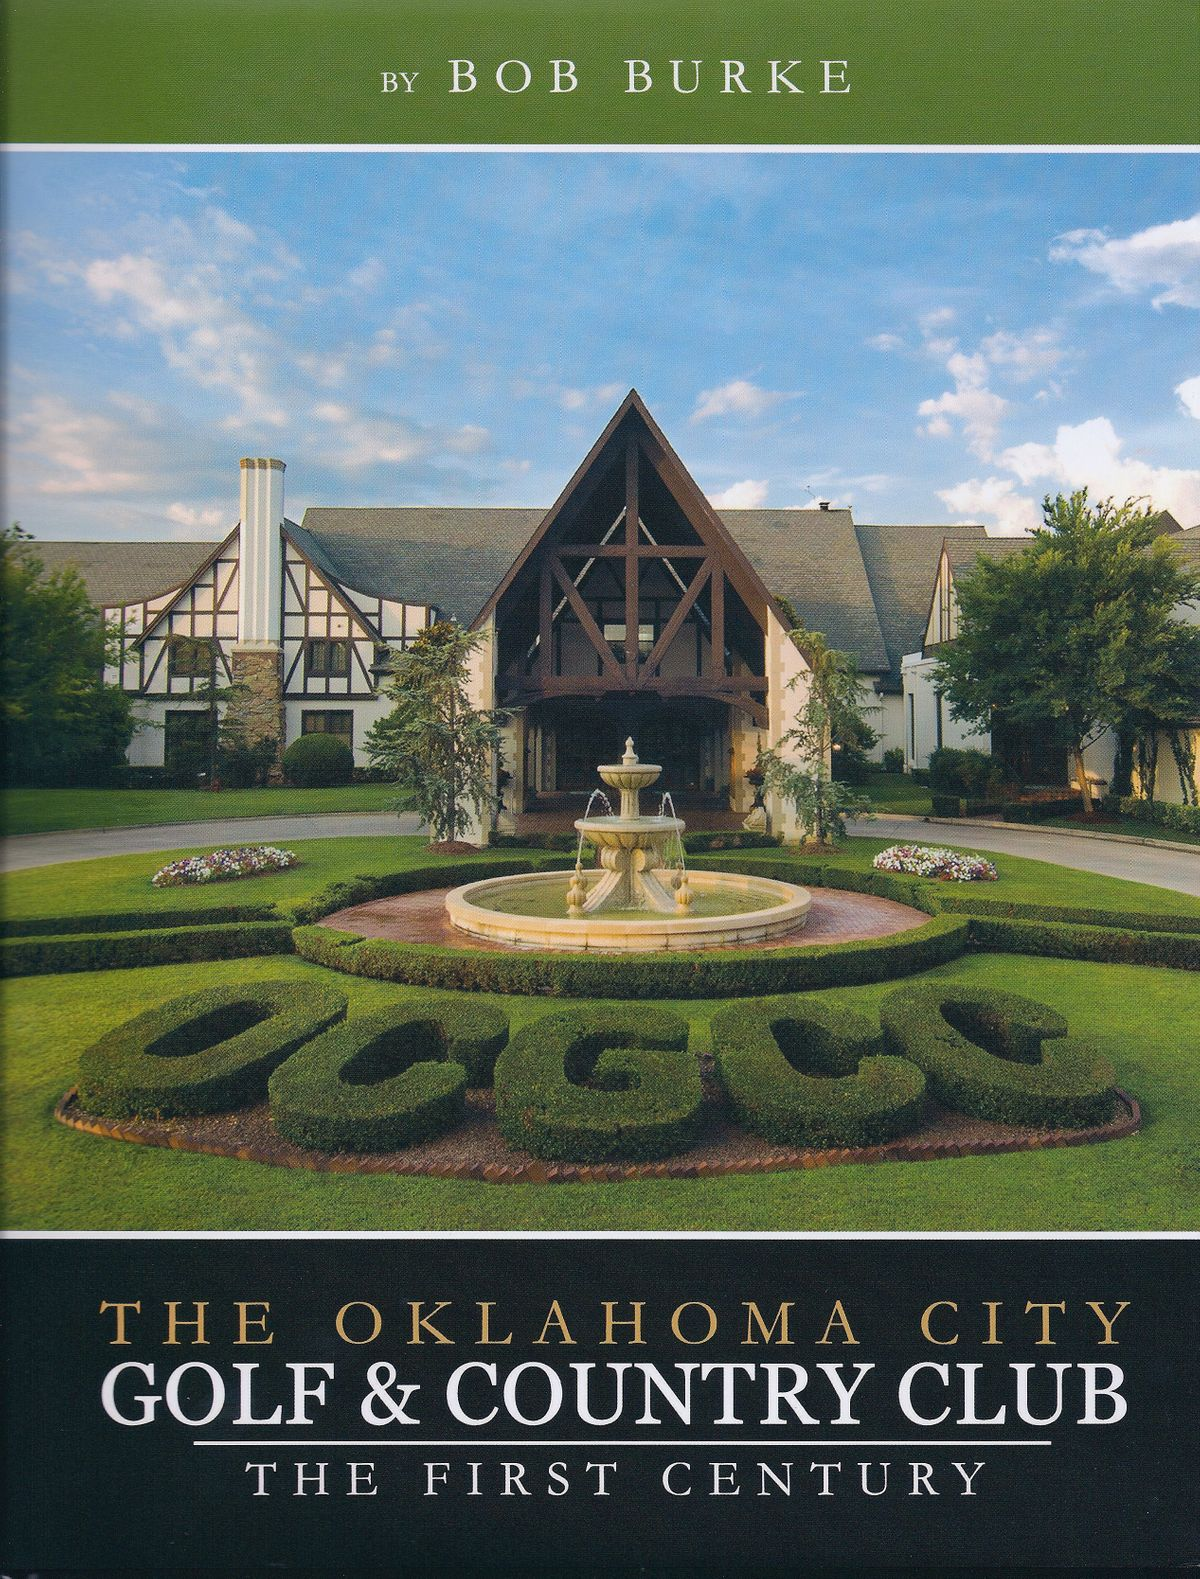 OKC GOLF & COUNTRY CLUB.jpg